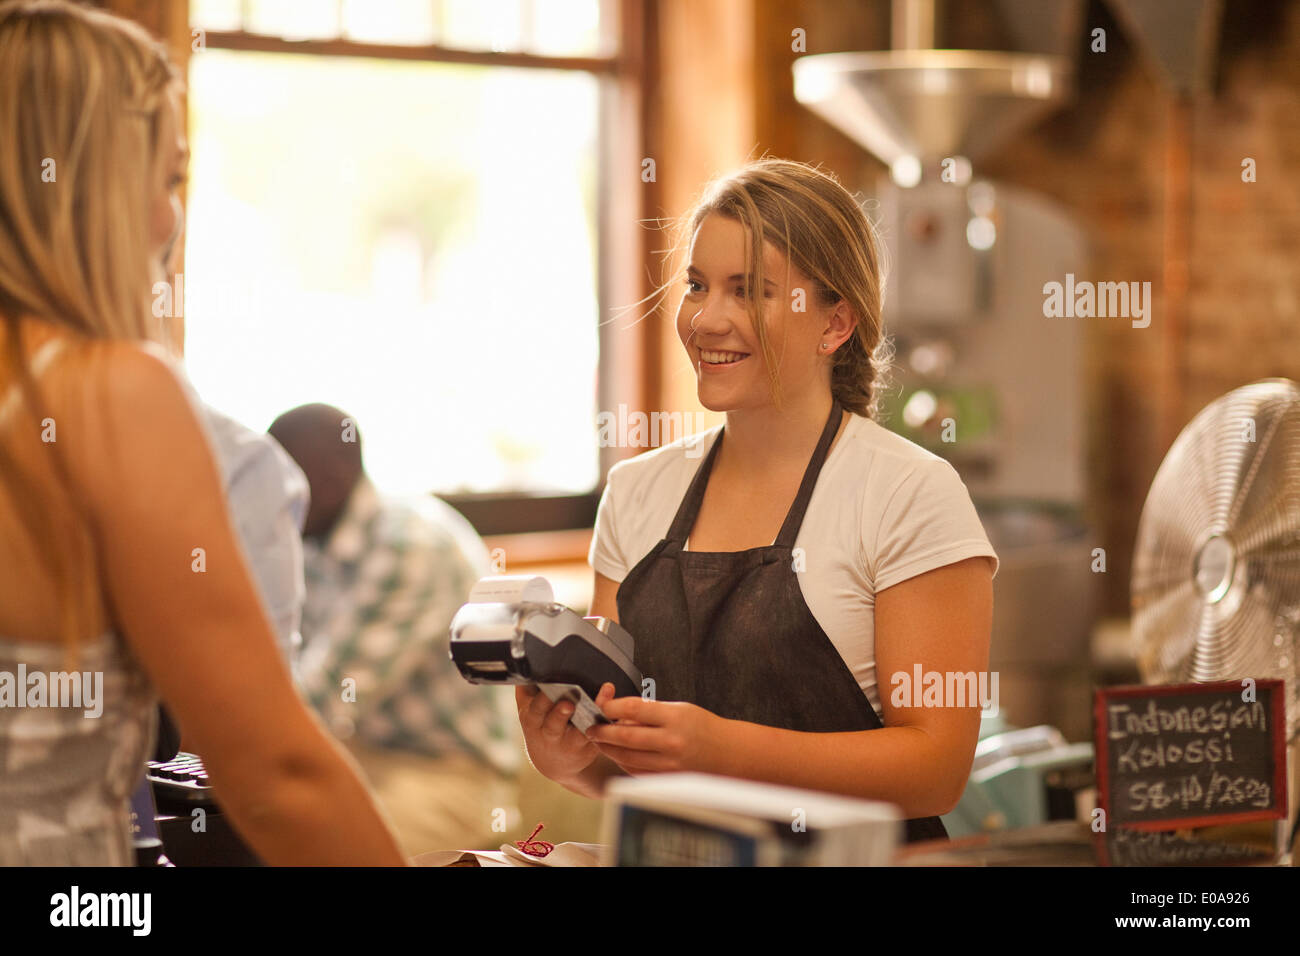 Young woman serving customer in coffee shop - Stock Image